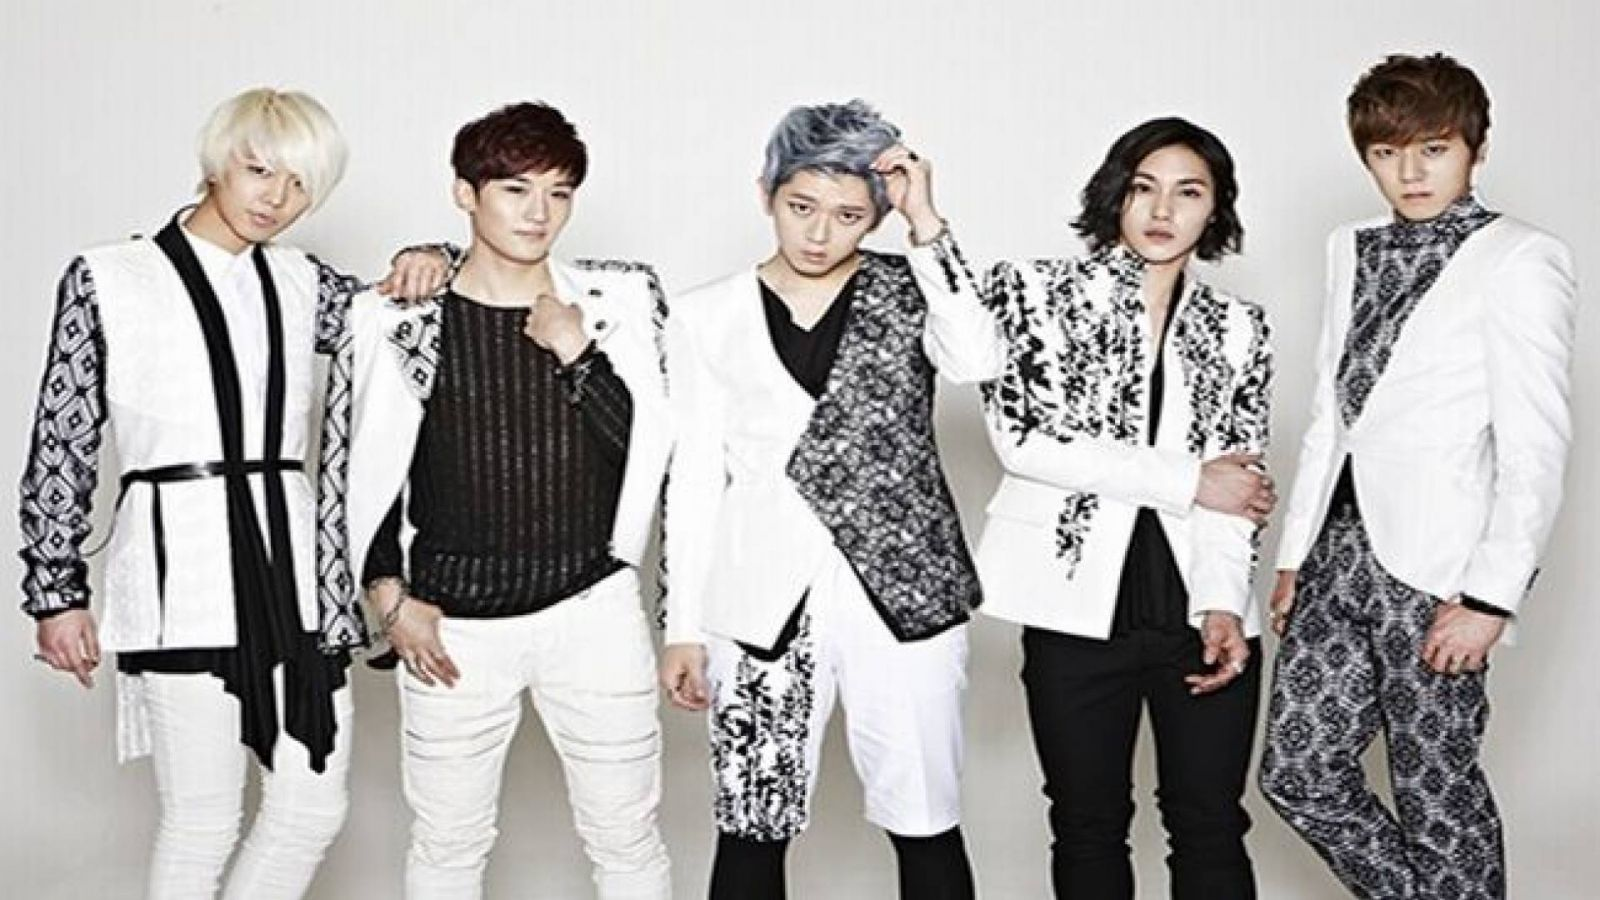 Bingbingbing, comeback do JJCC © JJCC, Jackie Chan Group Korea